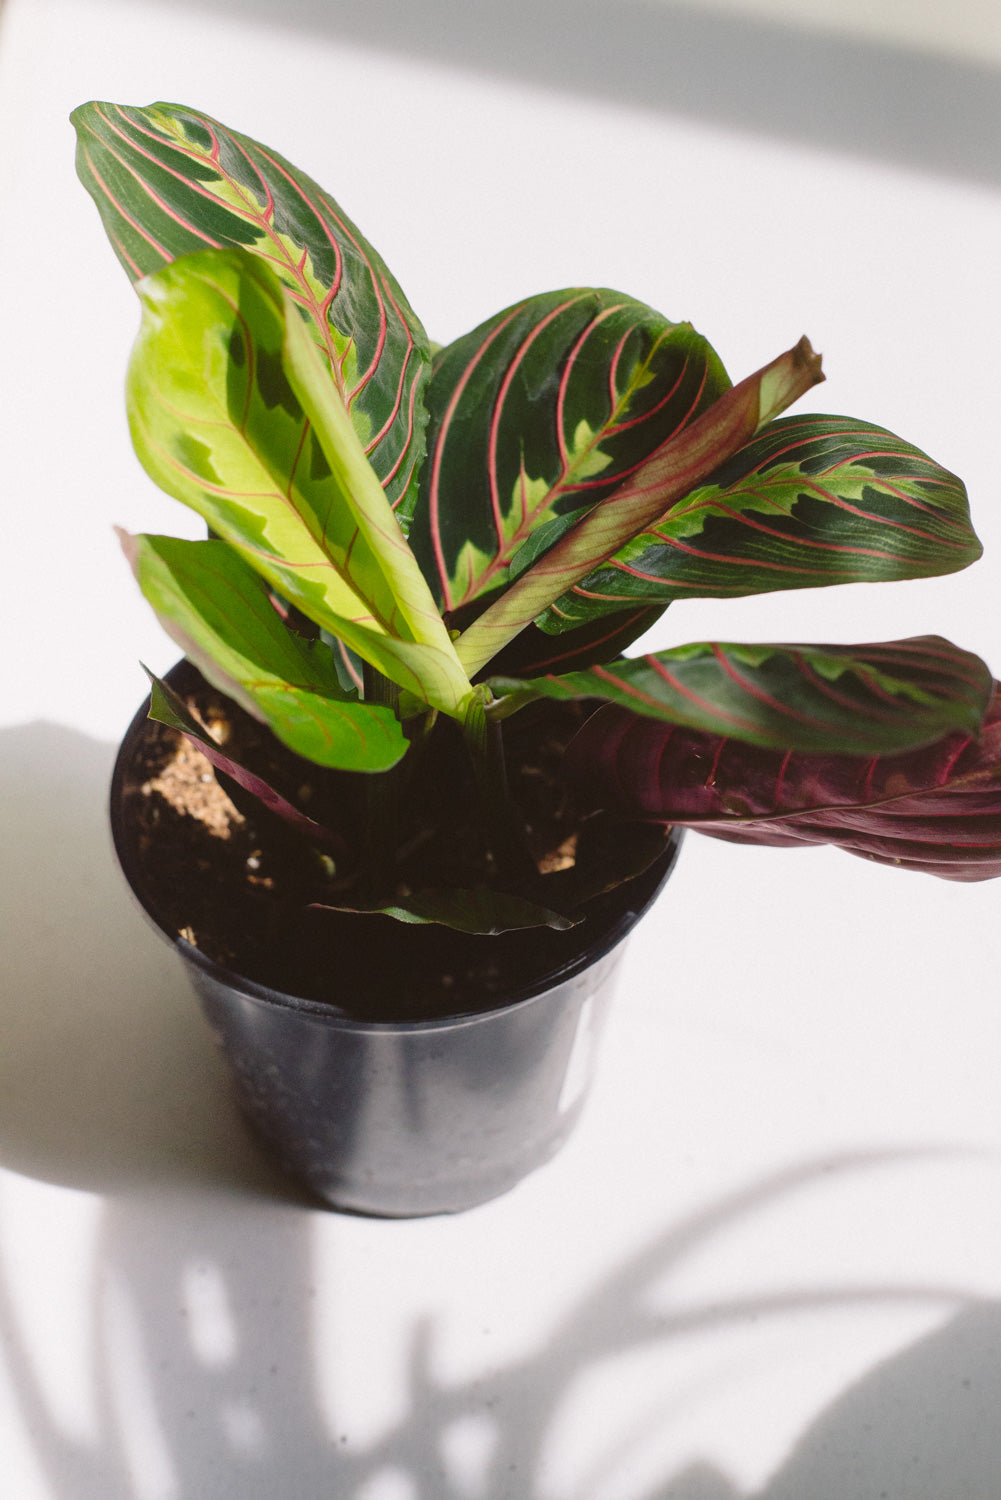 SMALL TROPICAL PLANT - MARANTA